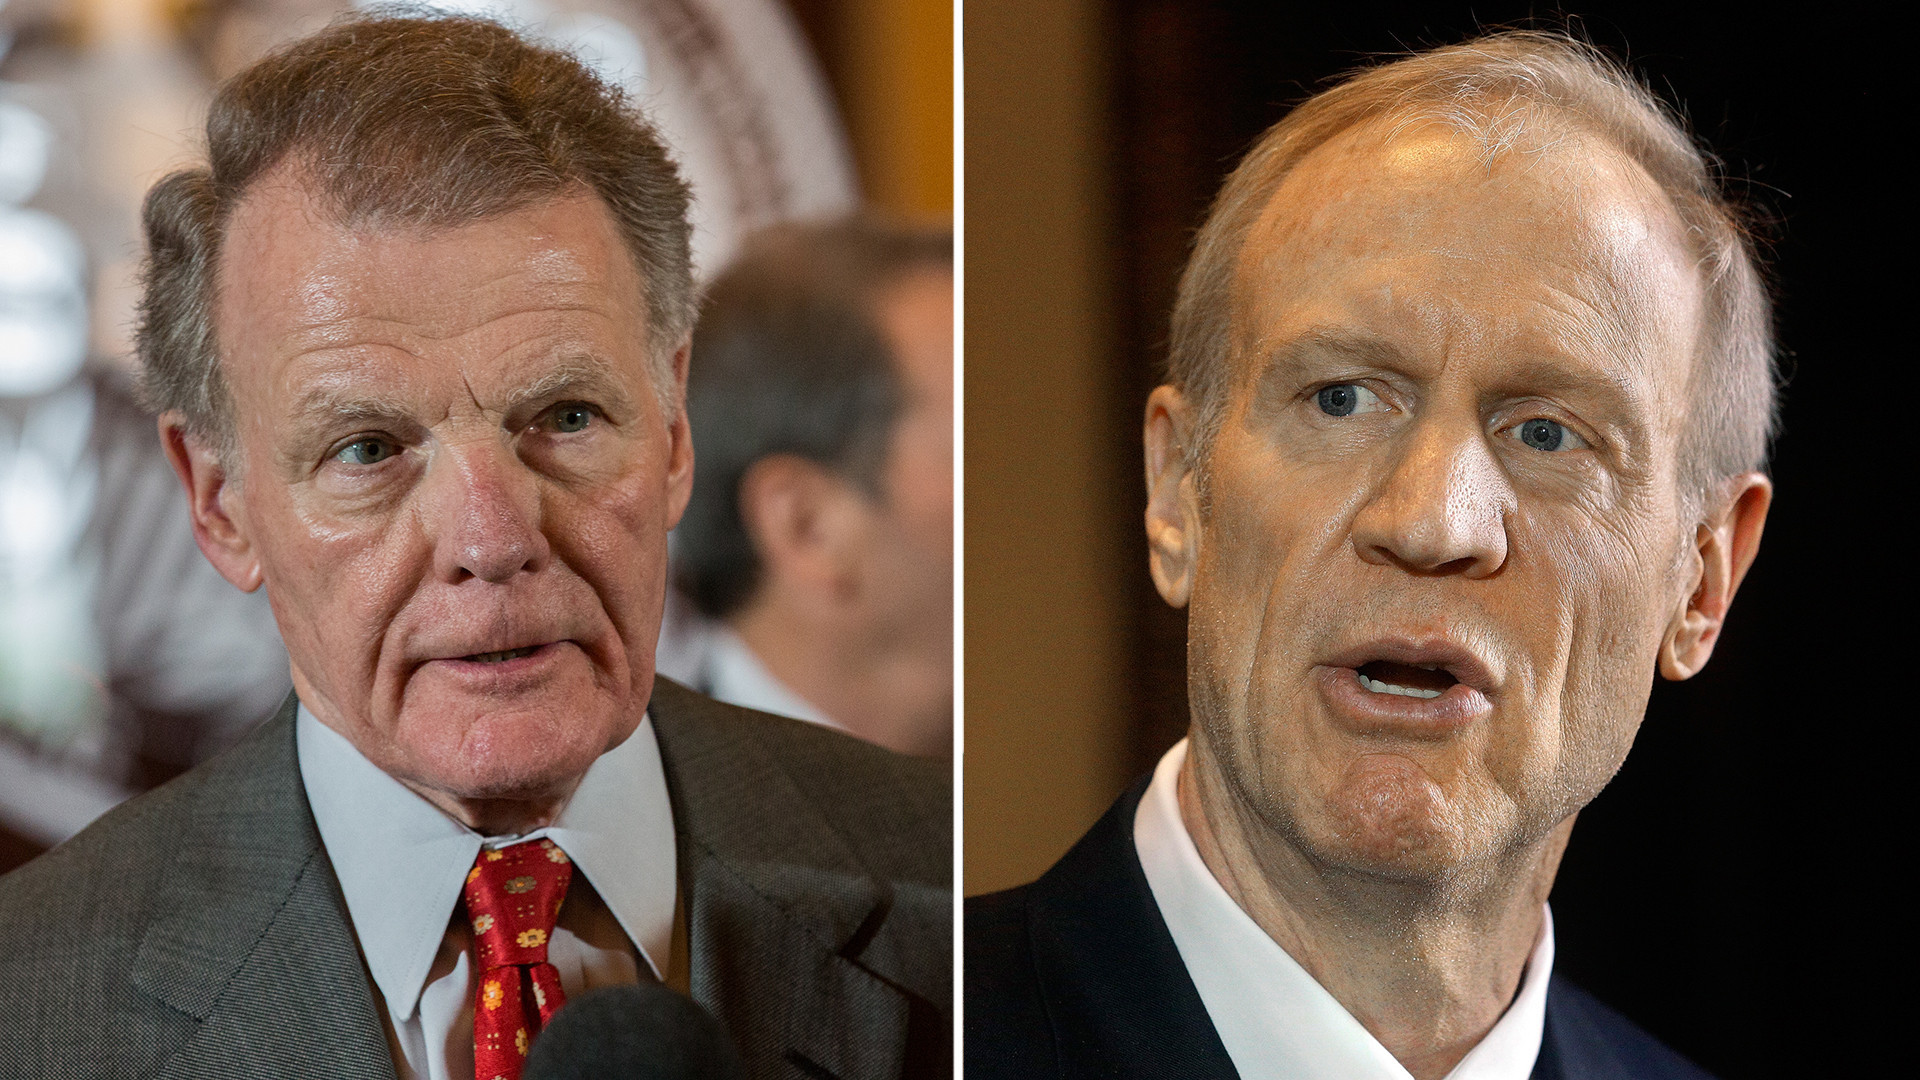 Rauner leaves Madigan criticism to Illinois GOP, at least for a day